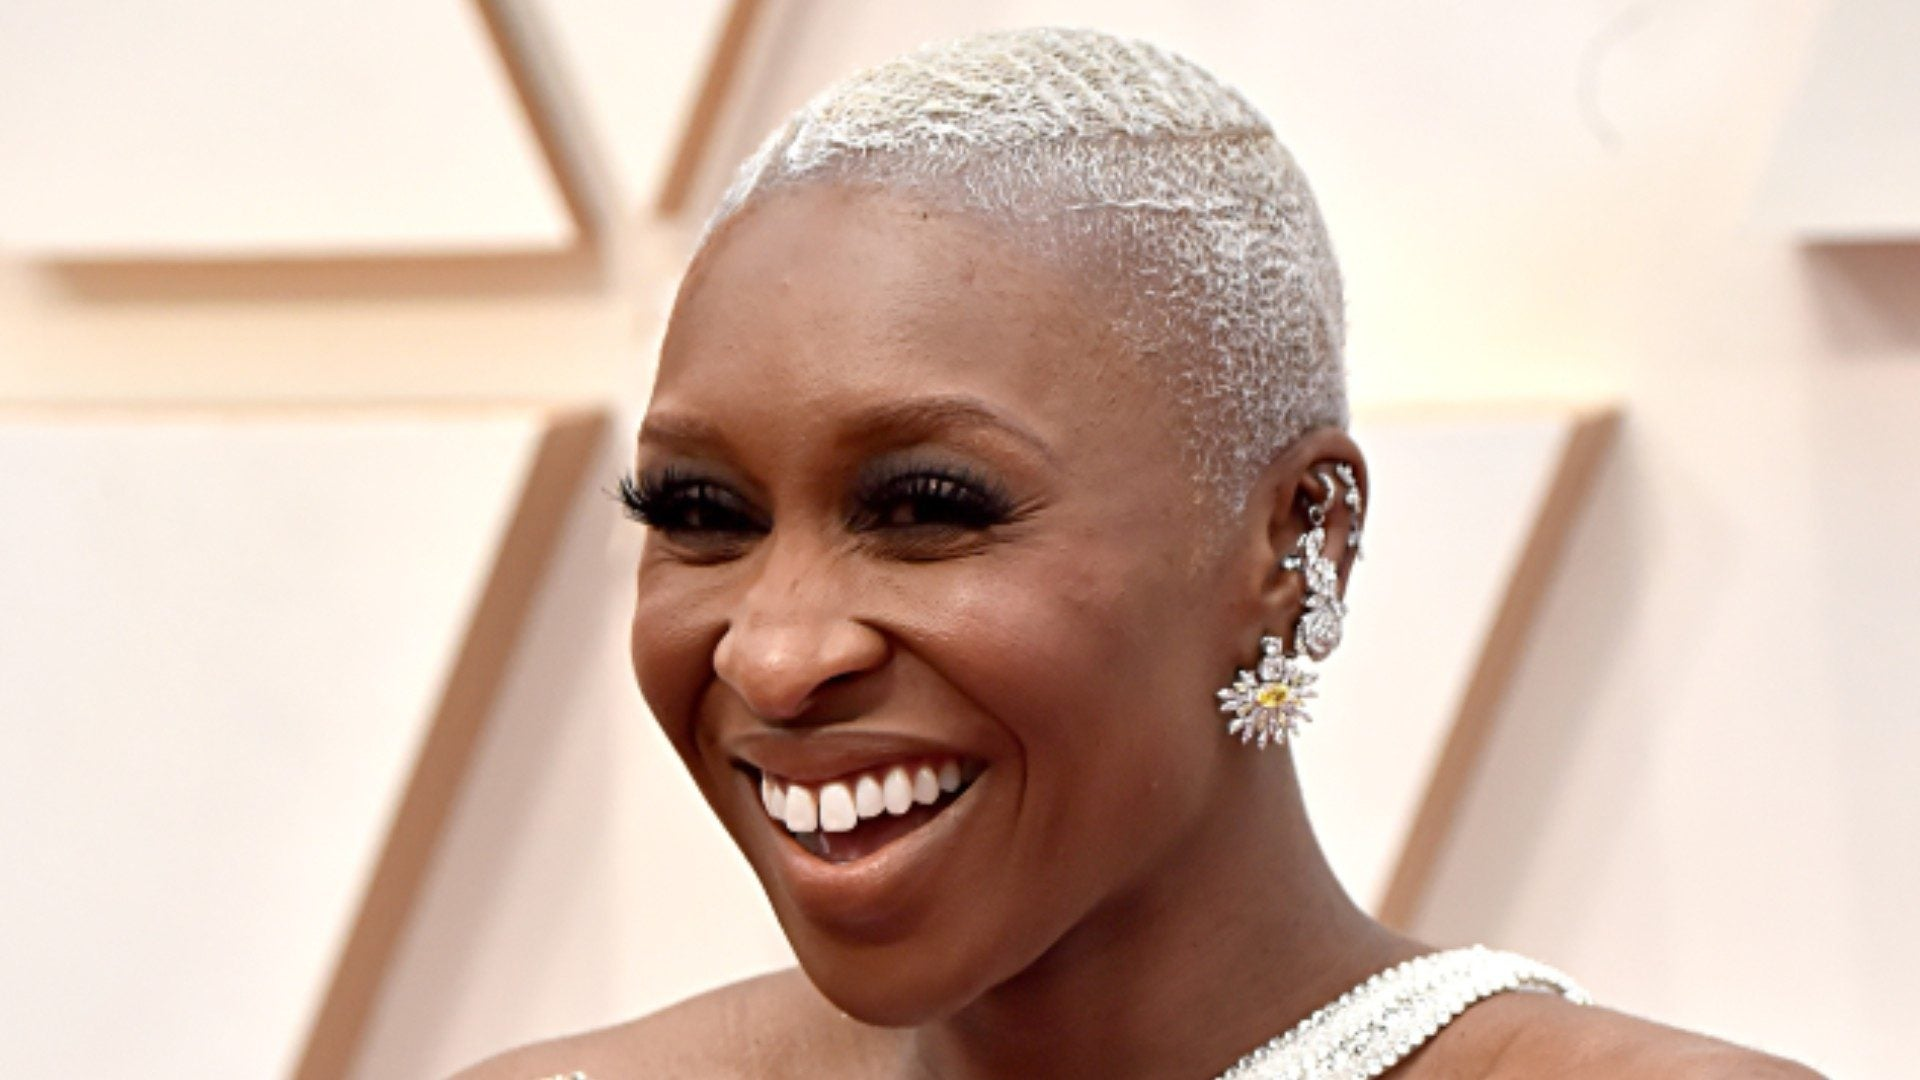 These Color-Safe Products Made Cynthia Erivo's Hair Pop At The Oscars